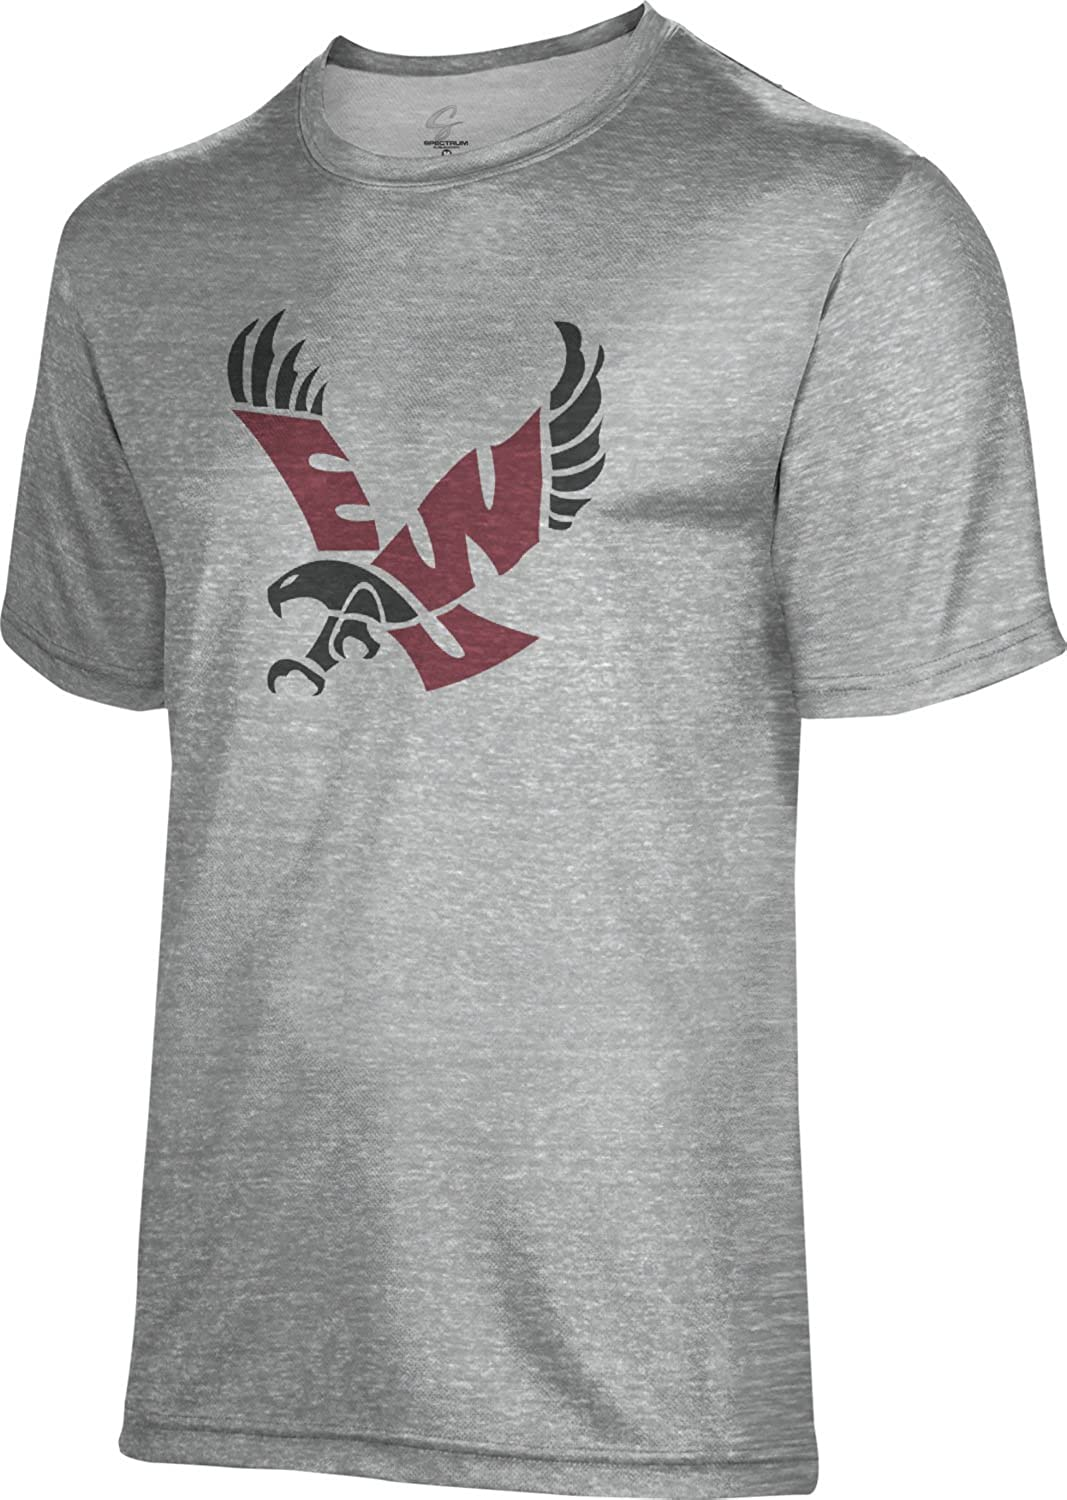 Spectrum Sublimation Eastern Washington University Unisex Poly Cotton Tee